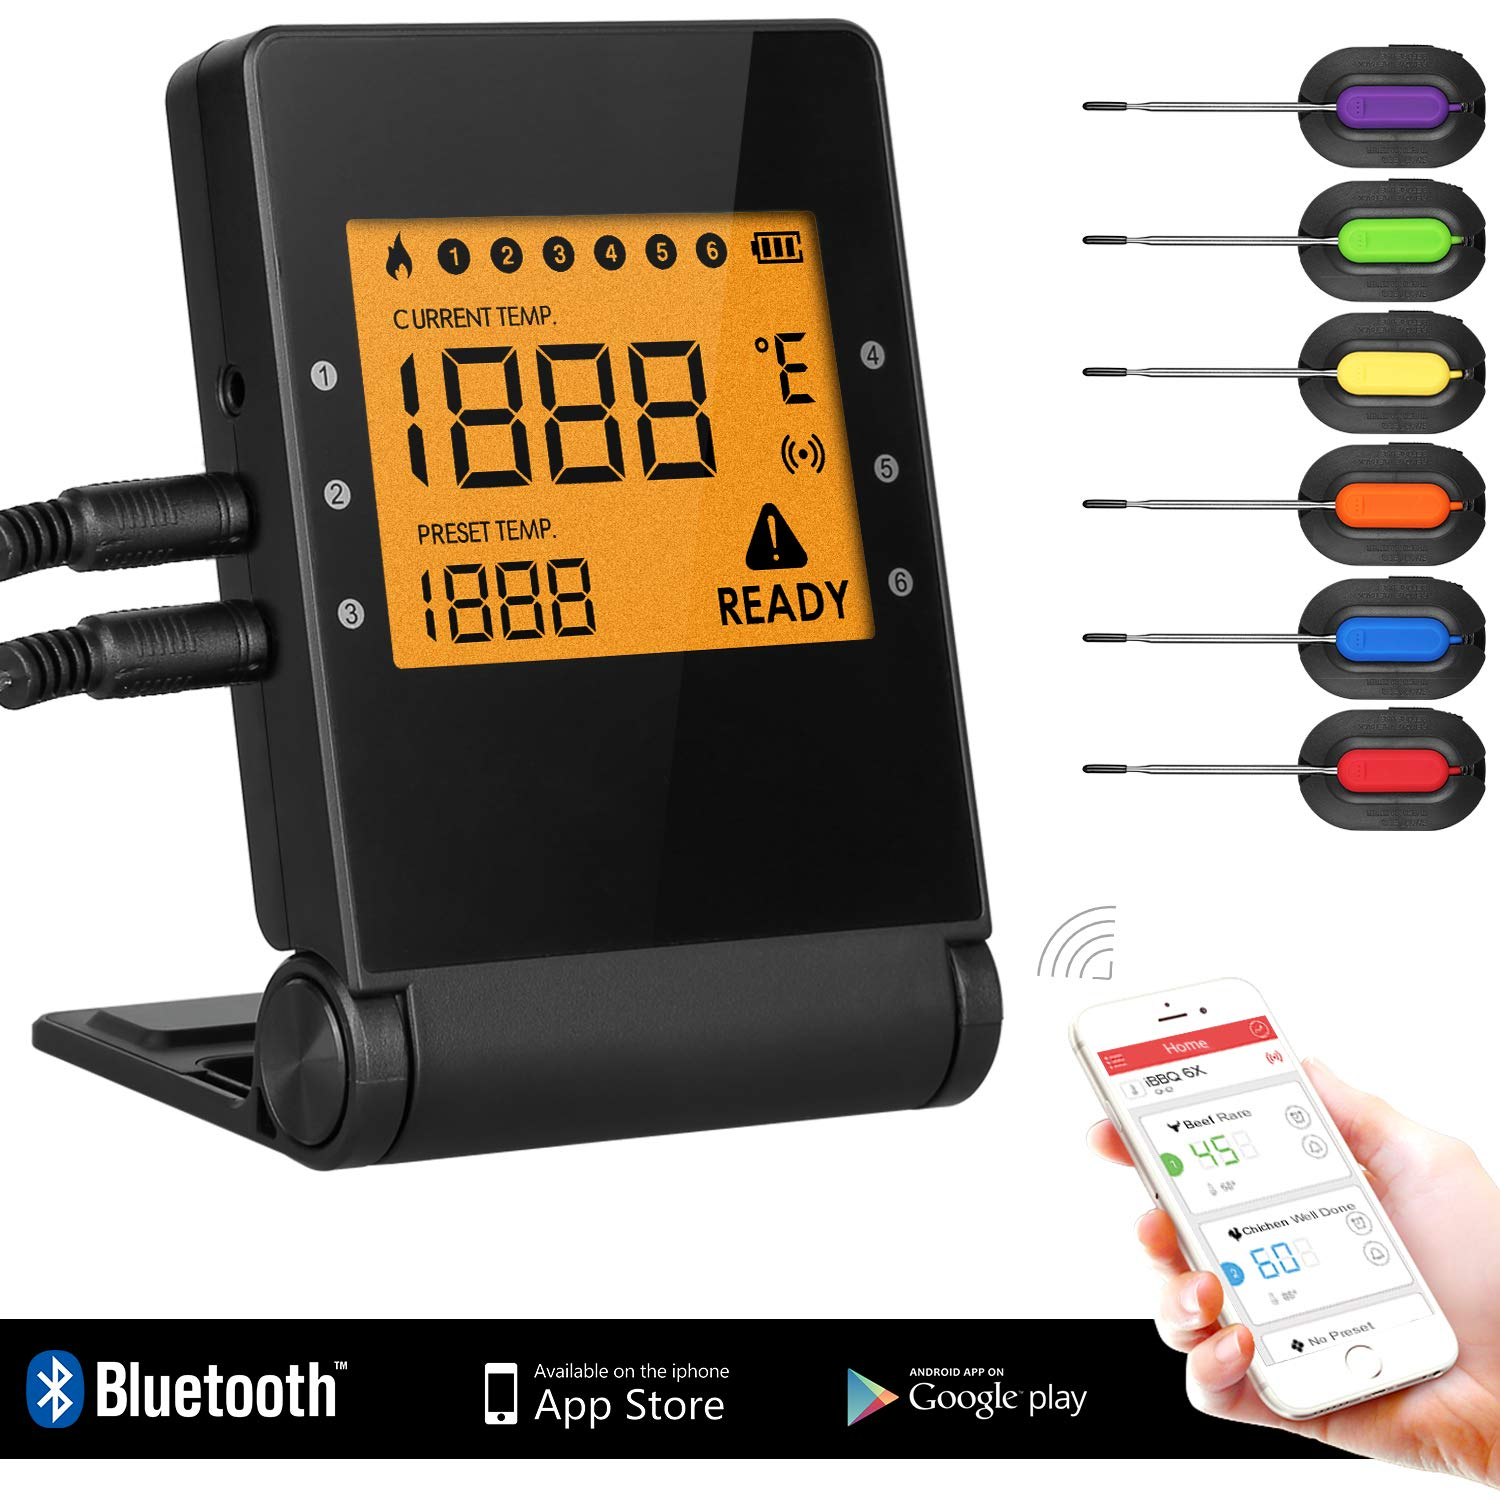 Bluetooth BBQ Meat Thermometer, Wireless Grilling Cooking Food Thermometer with APP for Smoker Kitchen Oven, 6 Stainless Steel Probes, Support iOS & Android